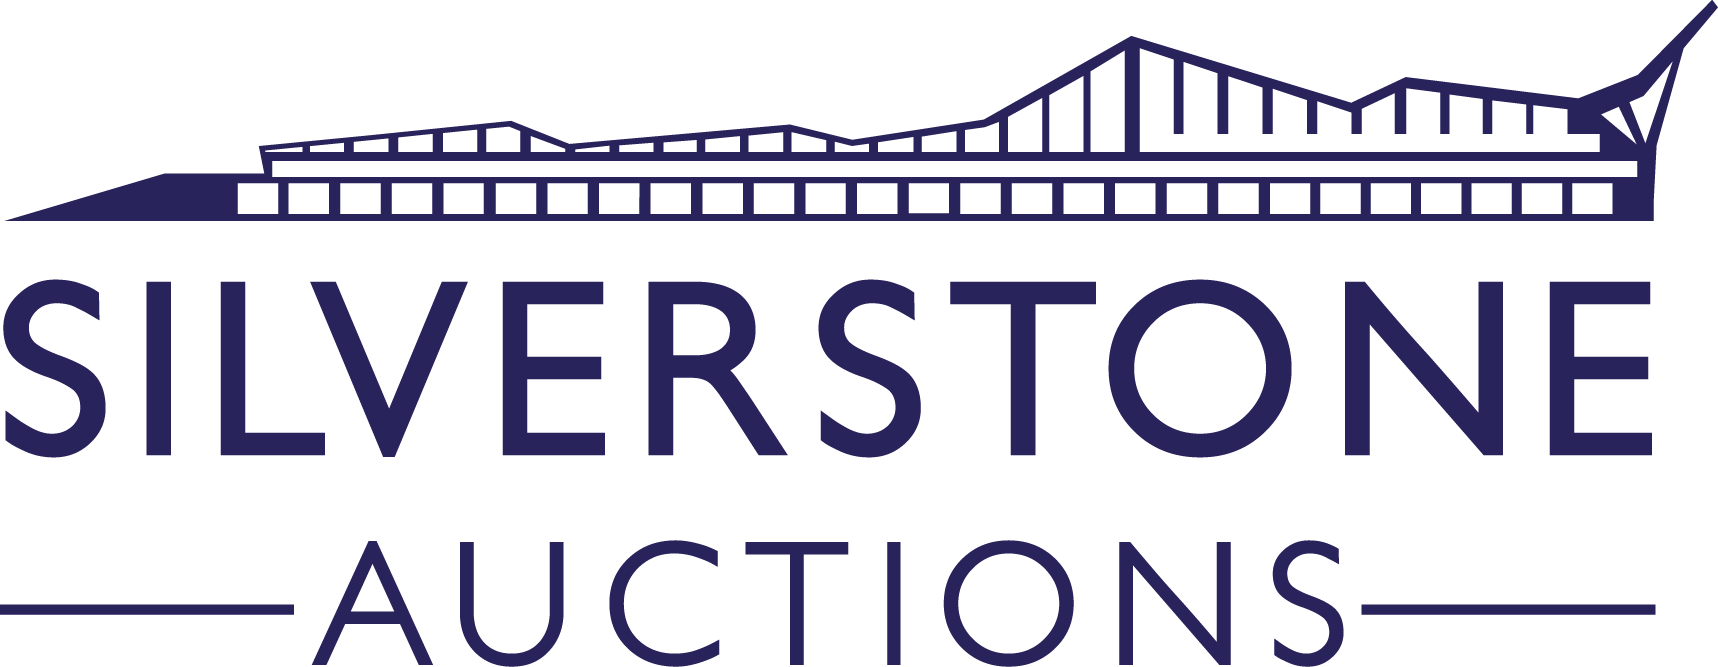 Silverstone Auctions logo